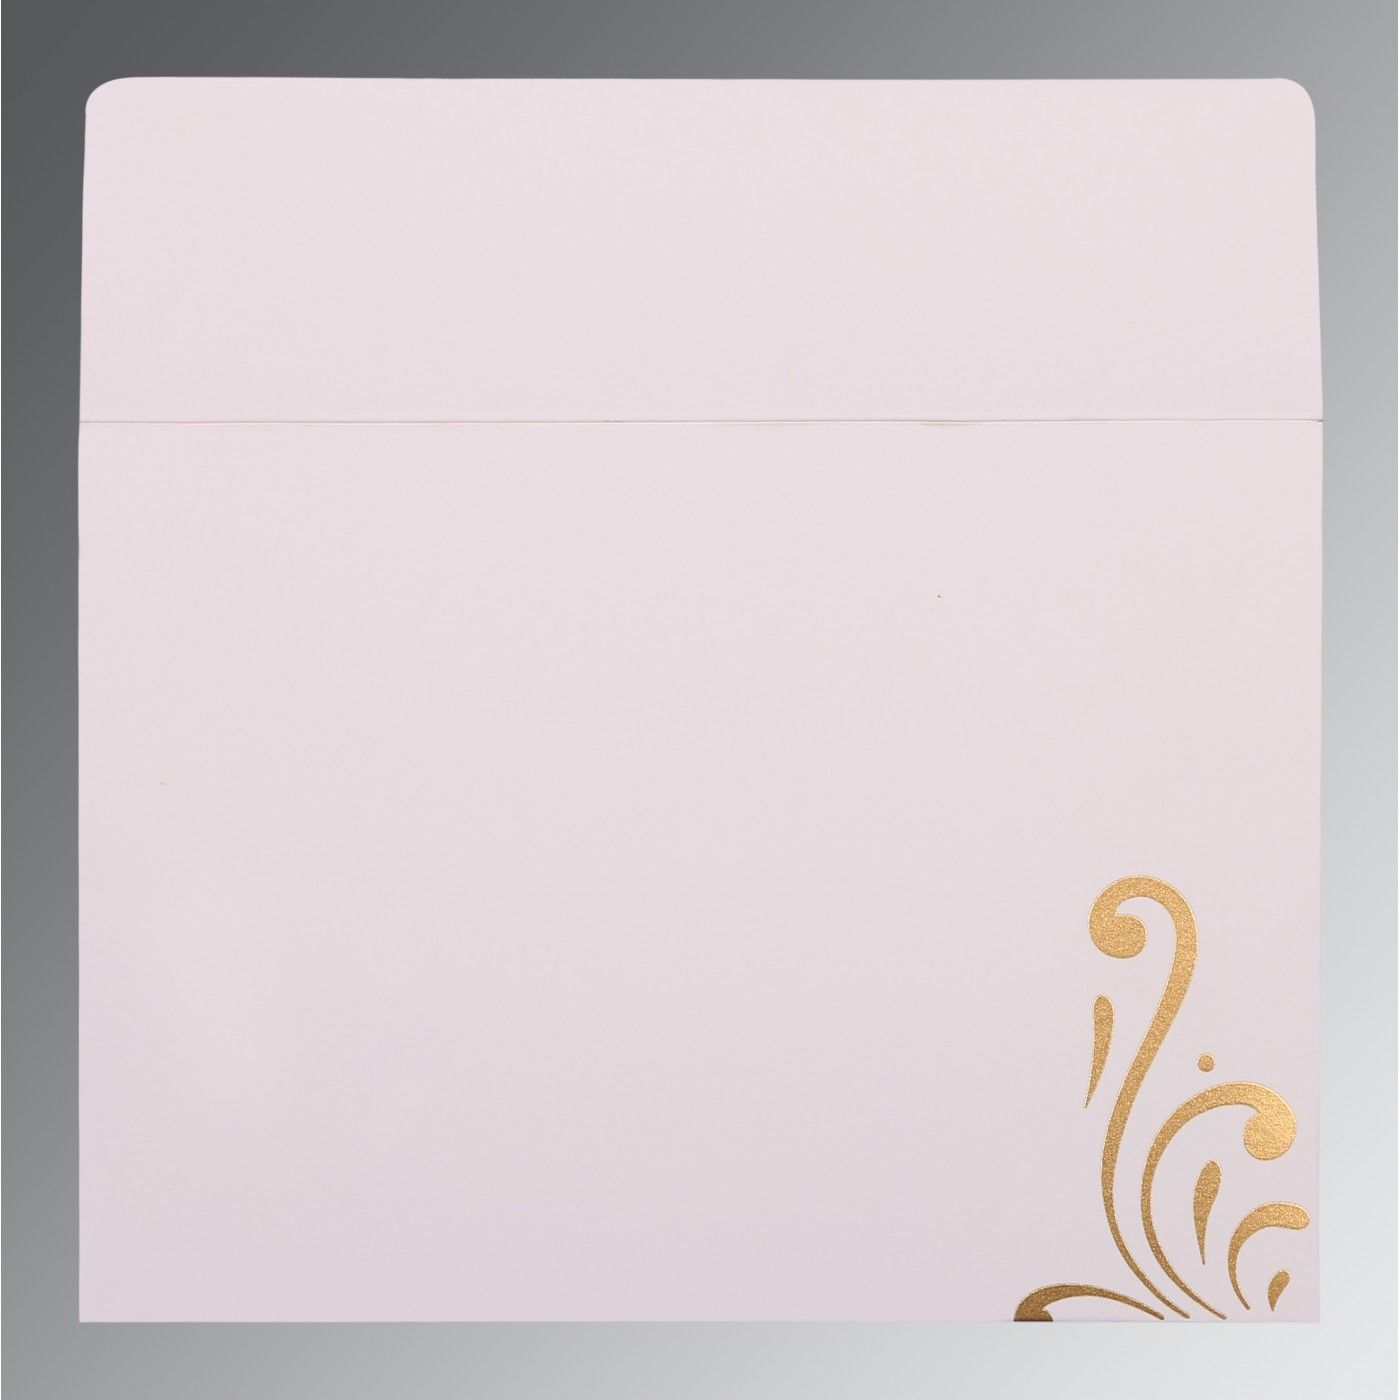 CHAMOISEE SHIMMERY SCREEN PRINTED WEDDING CARD : CW-8223L - IndianWeddingCards